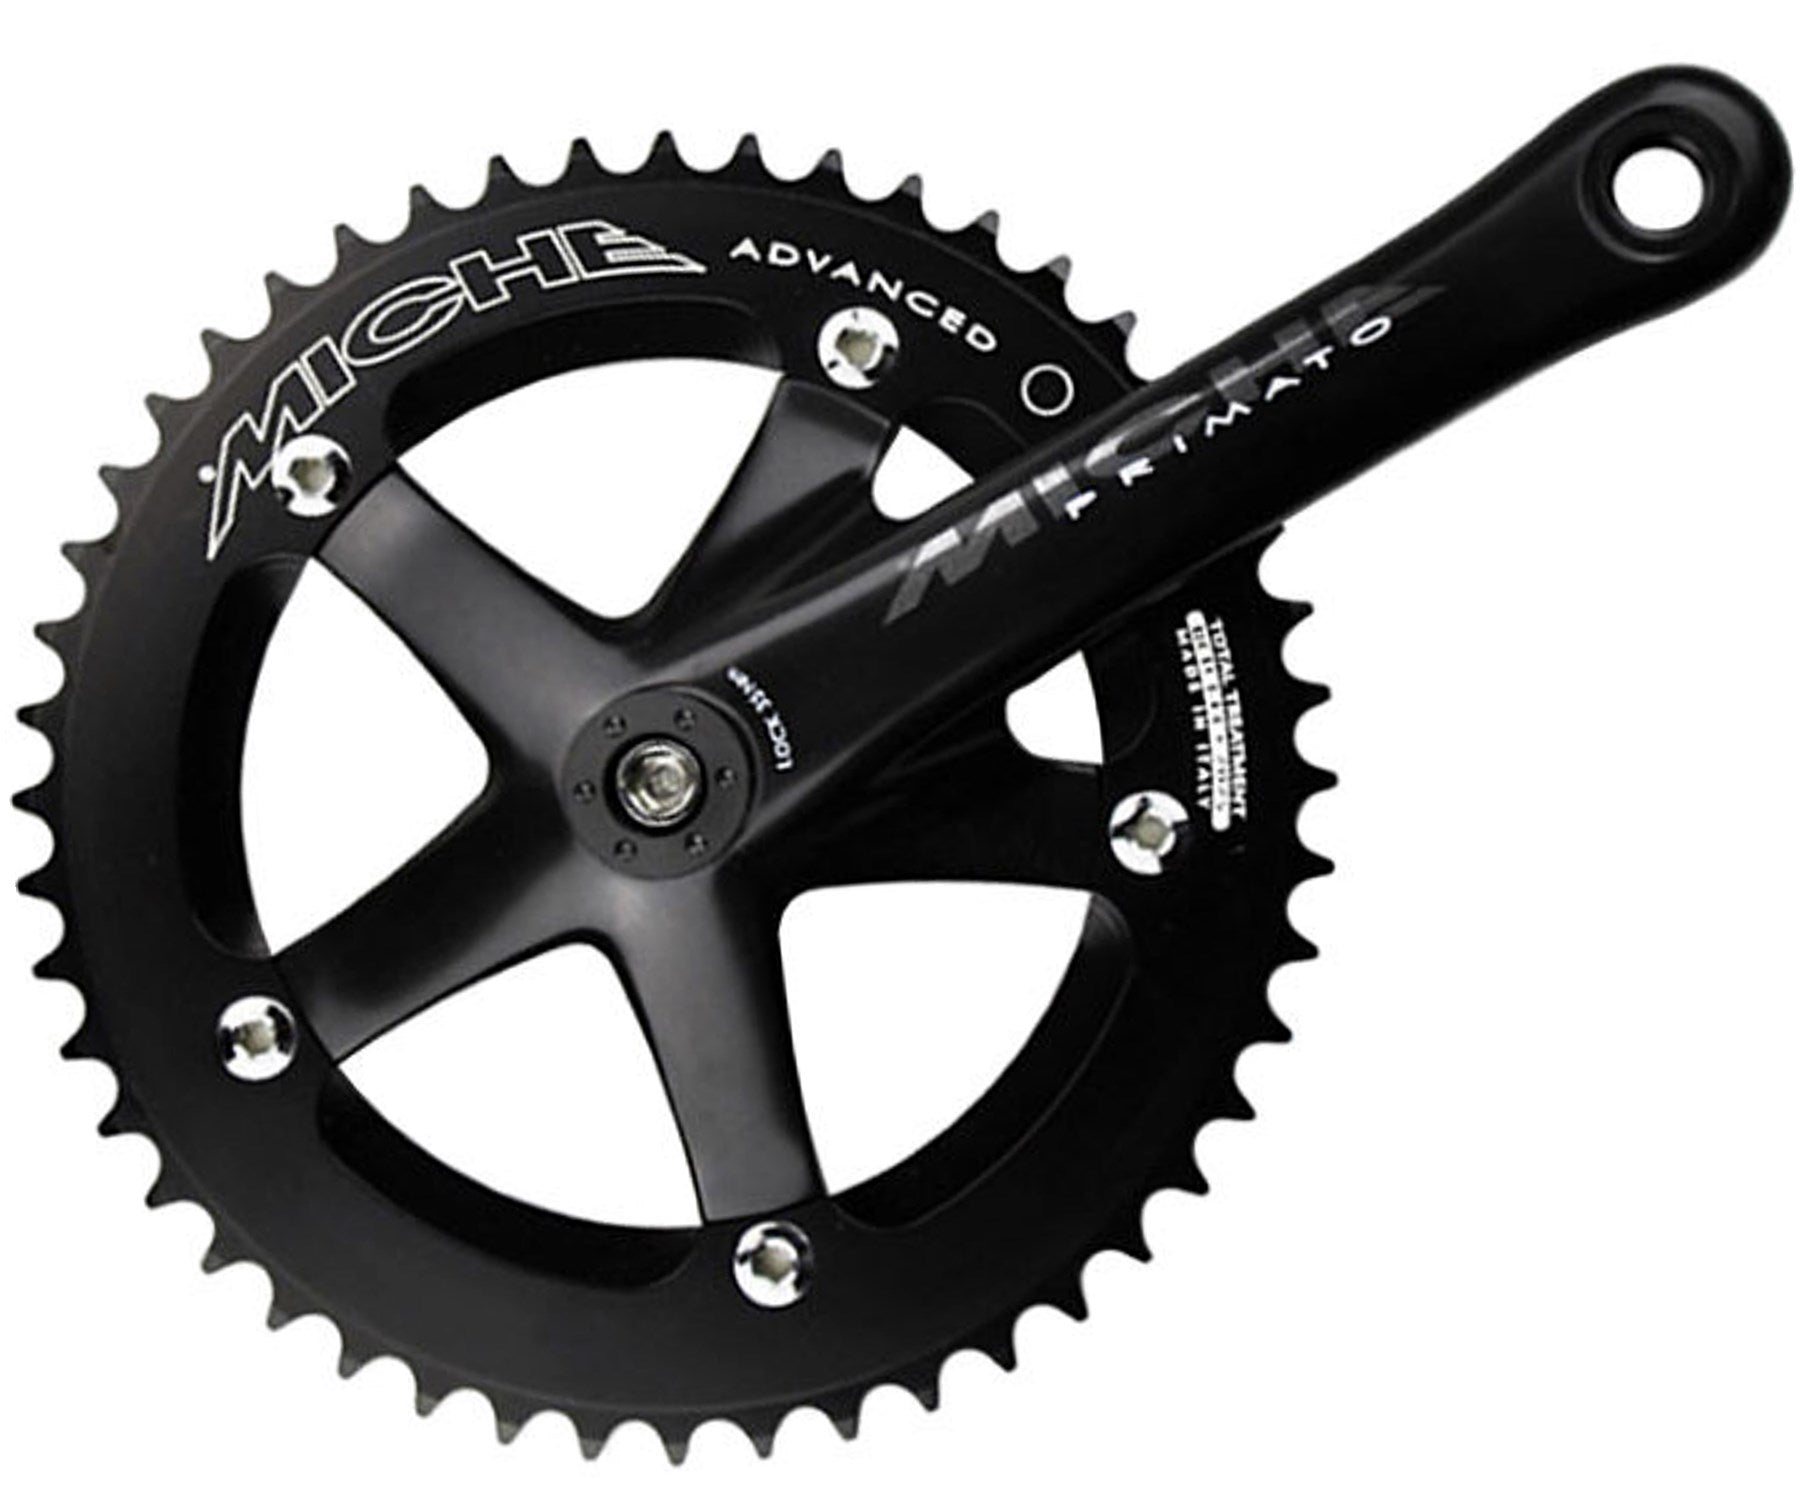 Miche Primato Advanced track JIS crankset - black